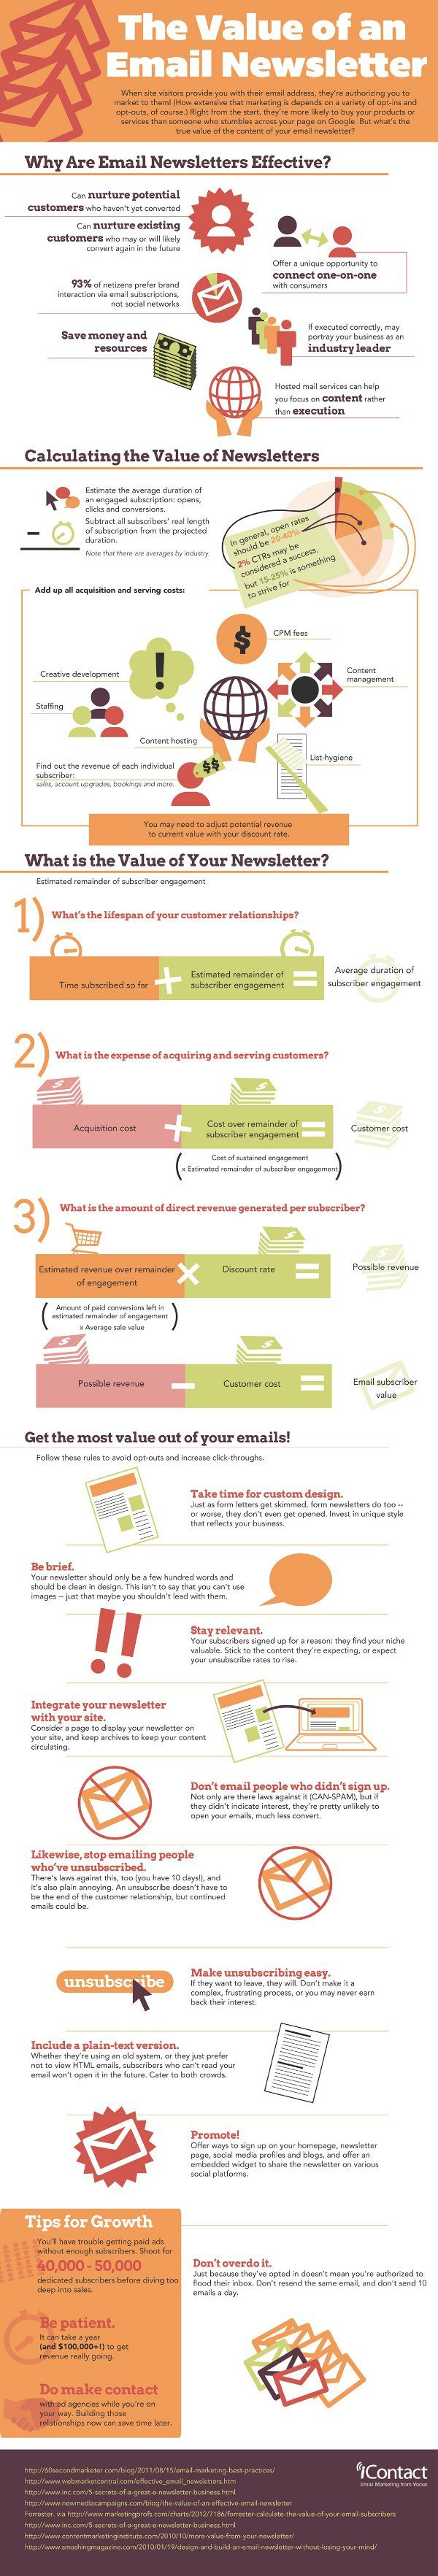 The Value Of An Email Newsletter